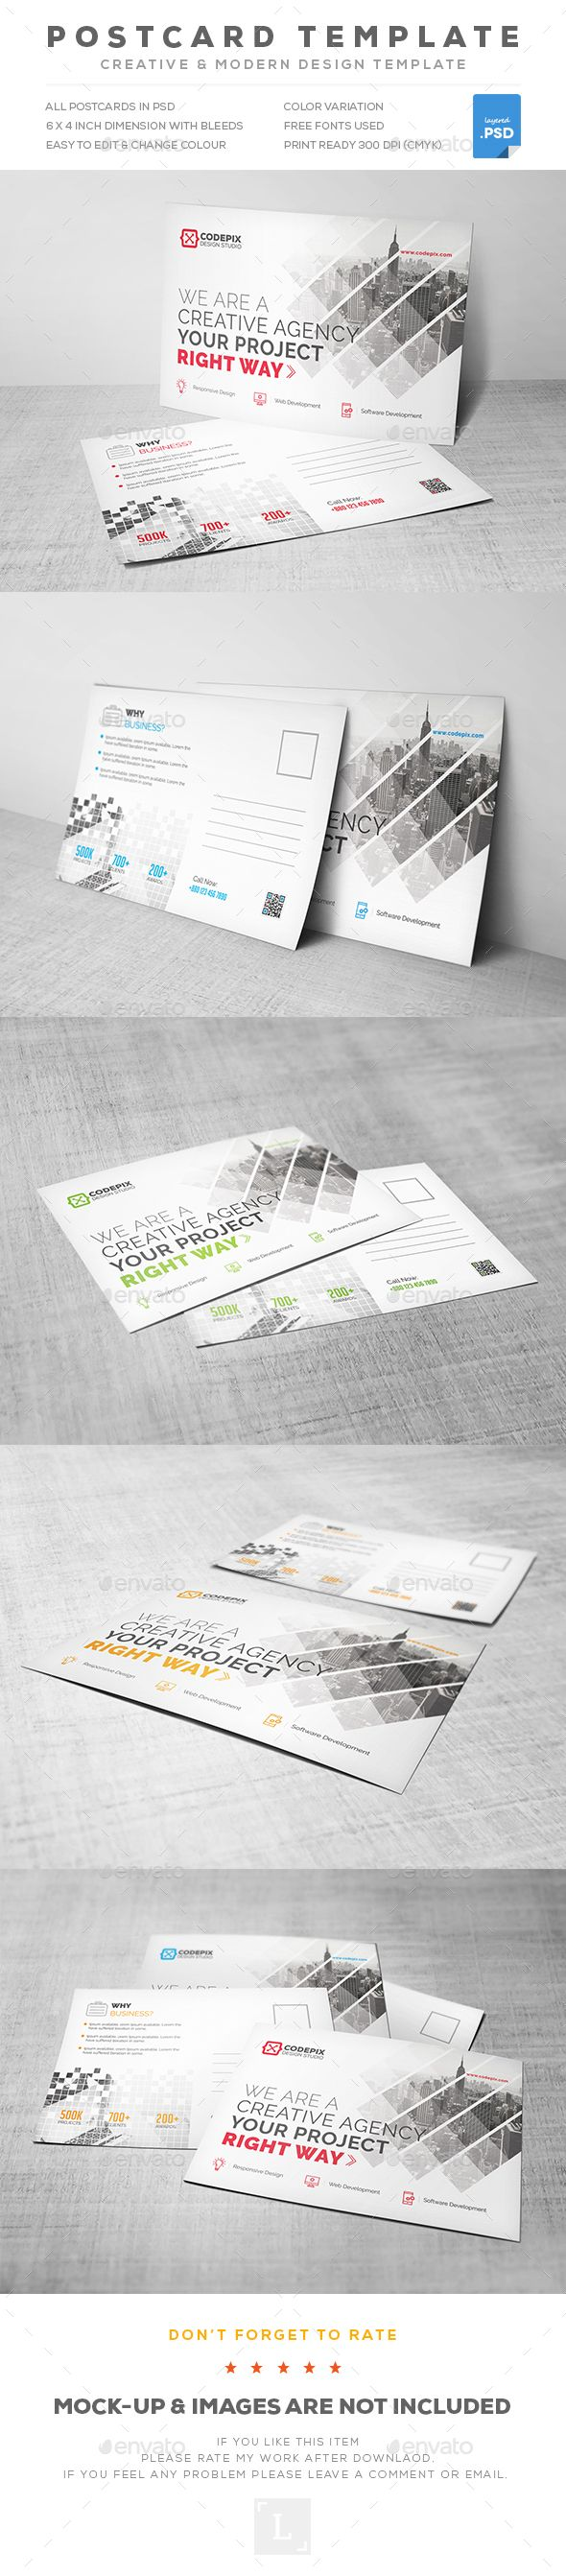 Corporate Postcard Template PSD                                                                                                                                                                                 More